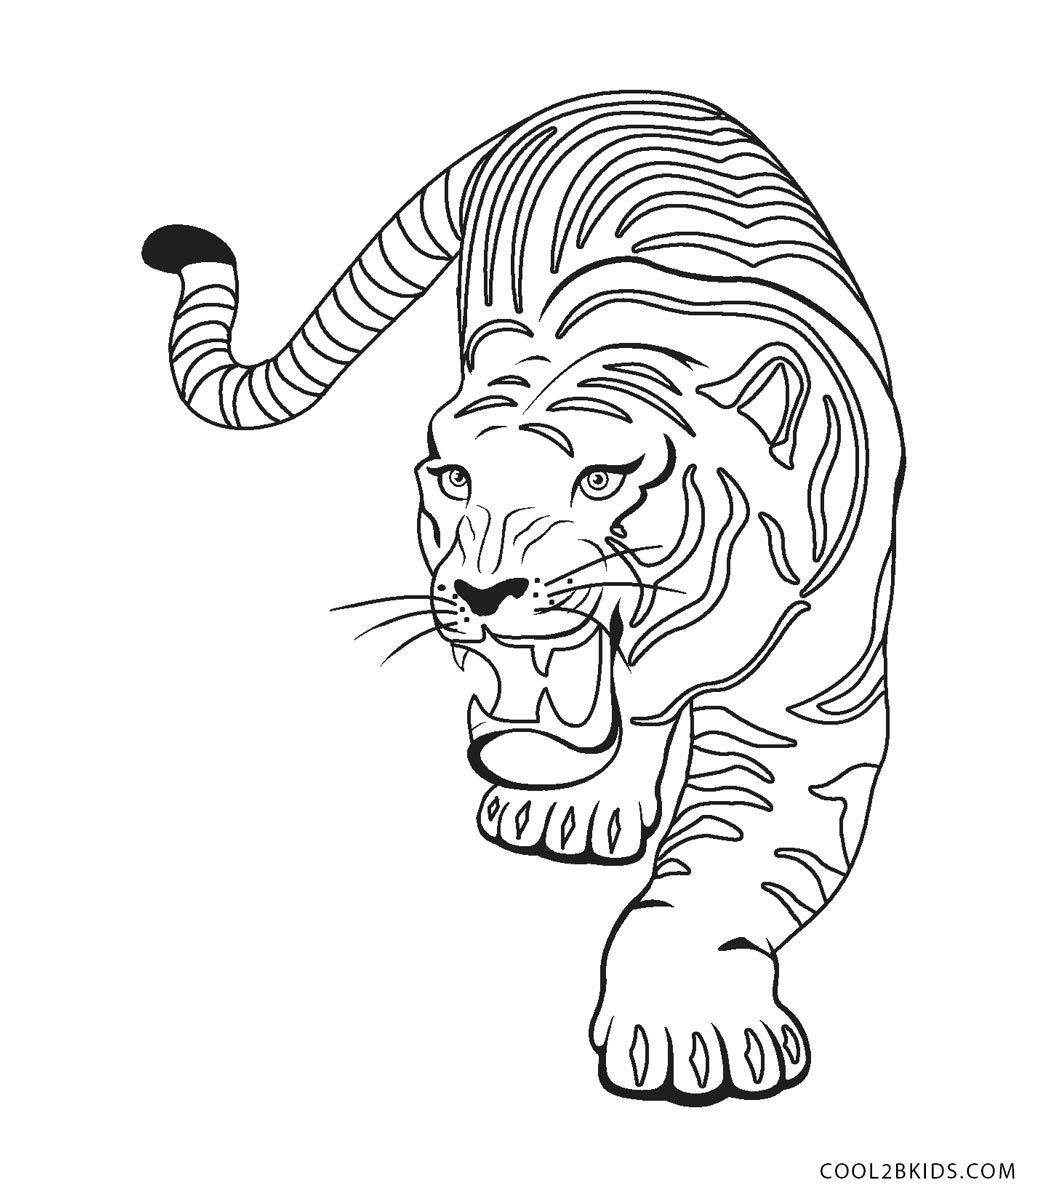 cool tiger coloring pages tigers coloring pages coloring kids coloring kids coloring cool pages tiger 1 1